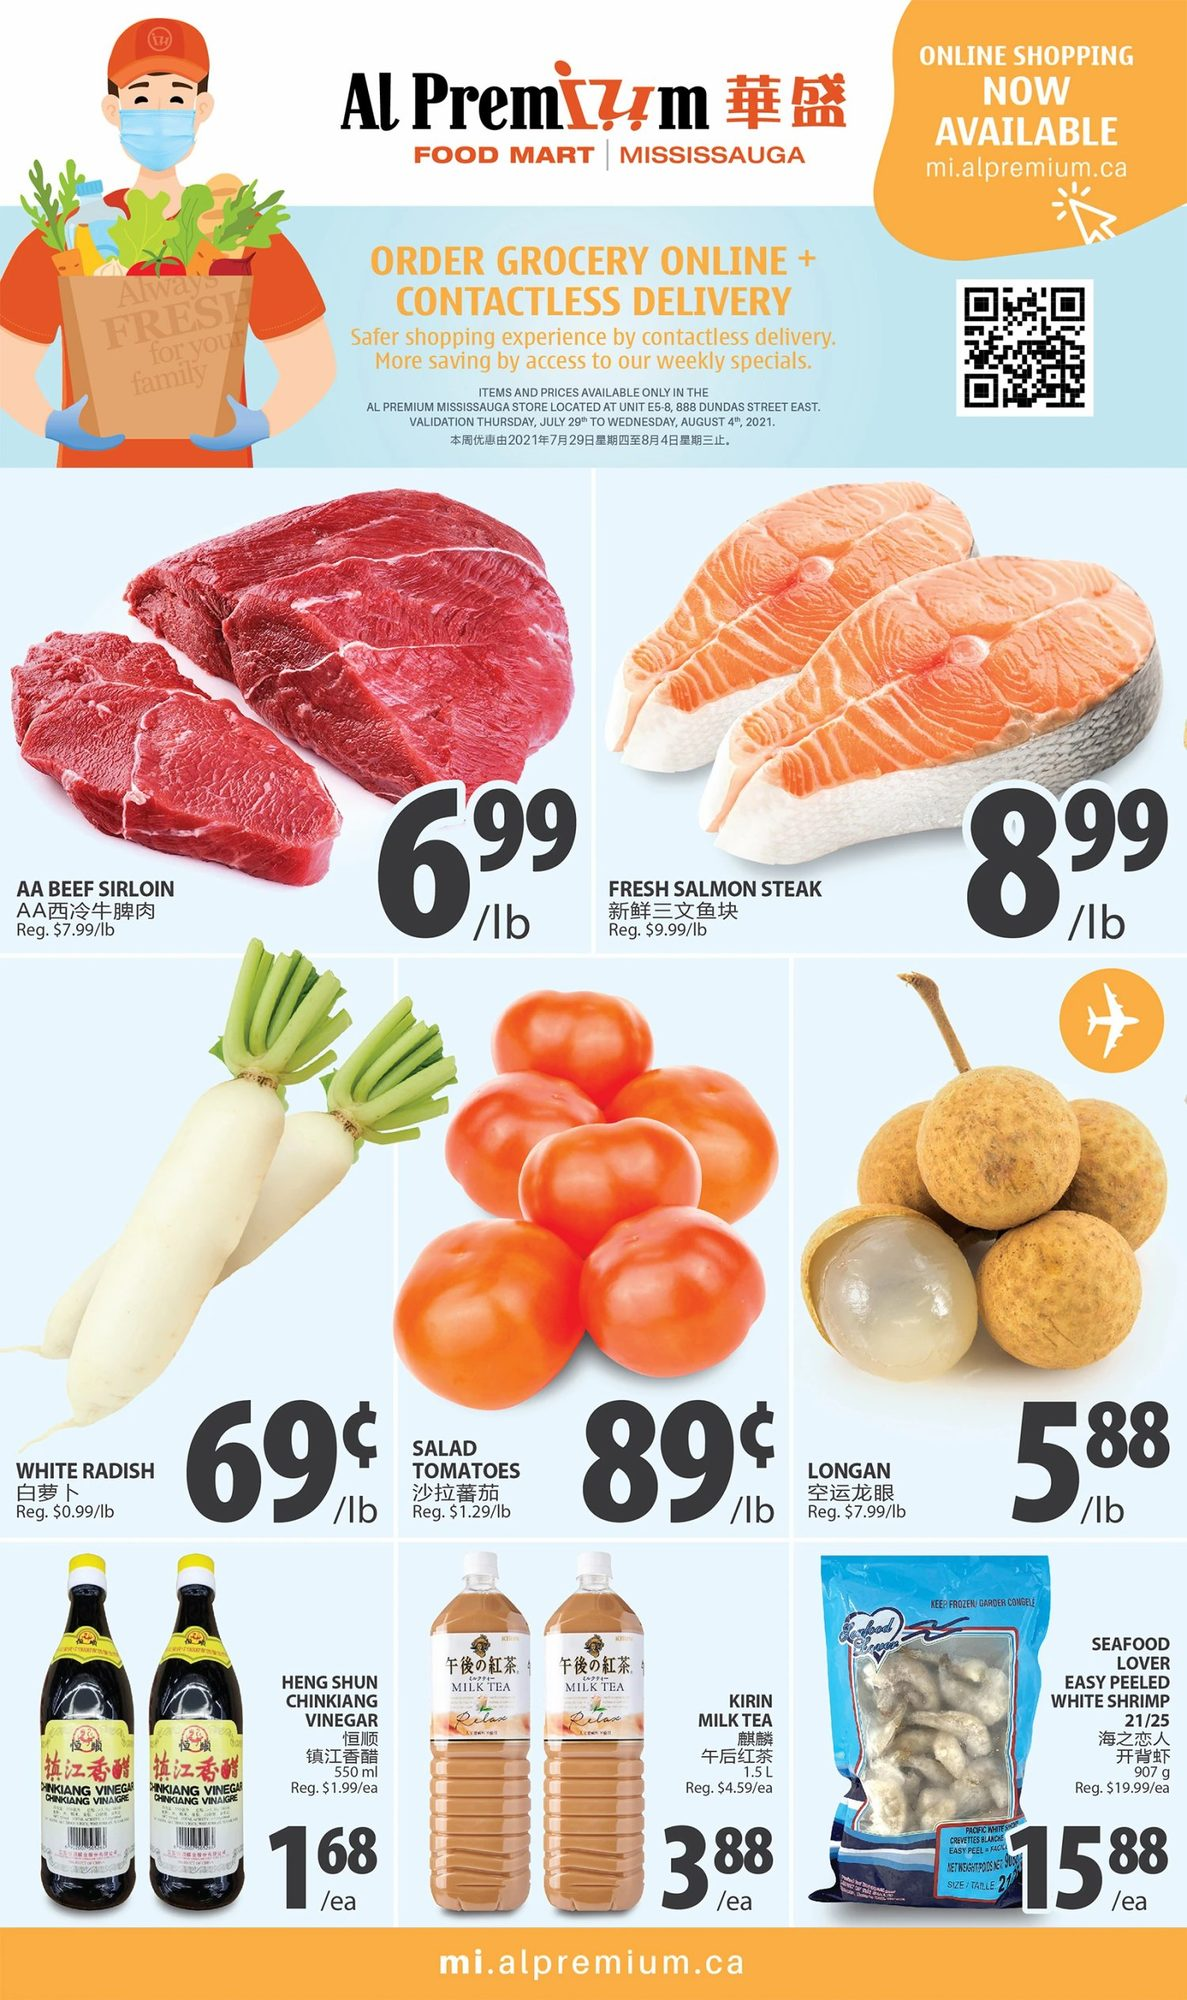 Al Premium - Mississauga Store Only - Weekly Flyer Specials